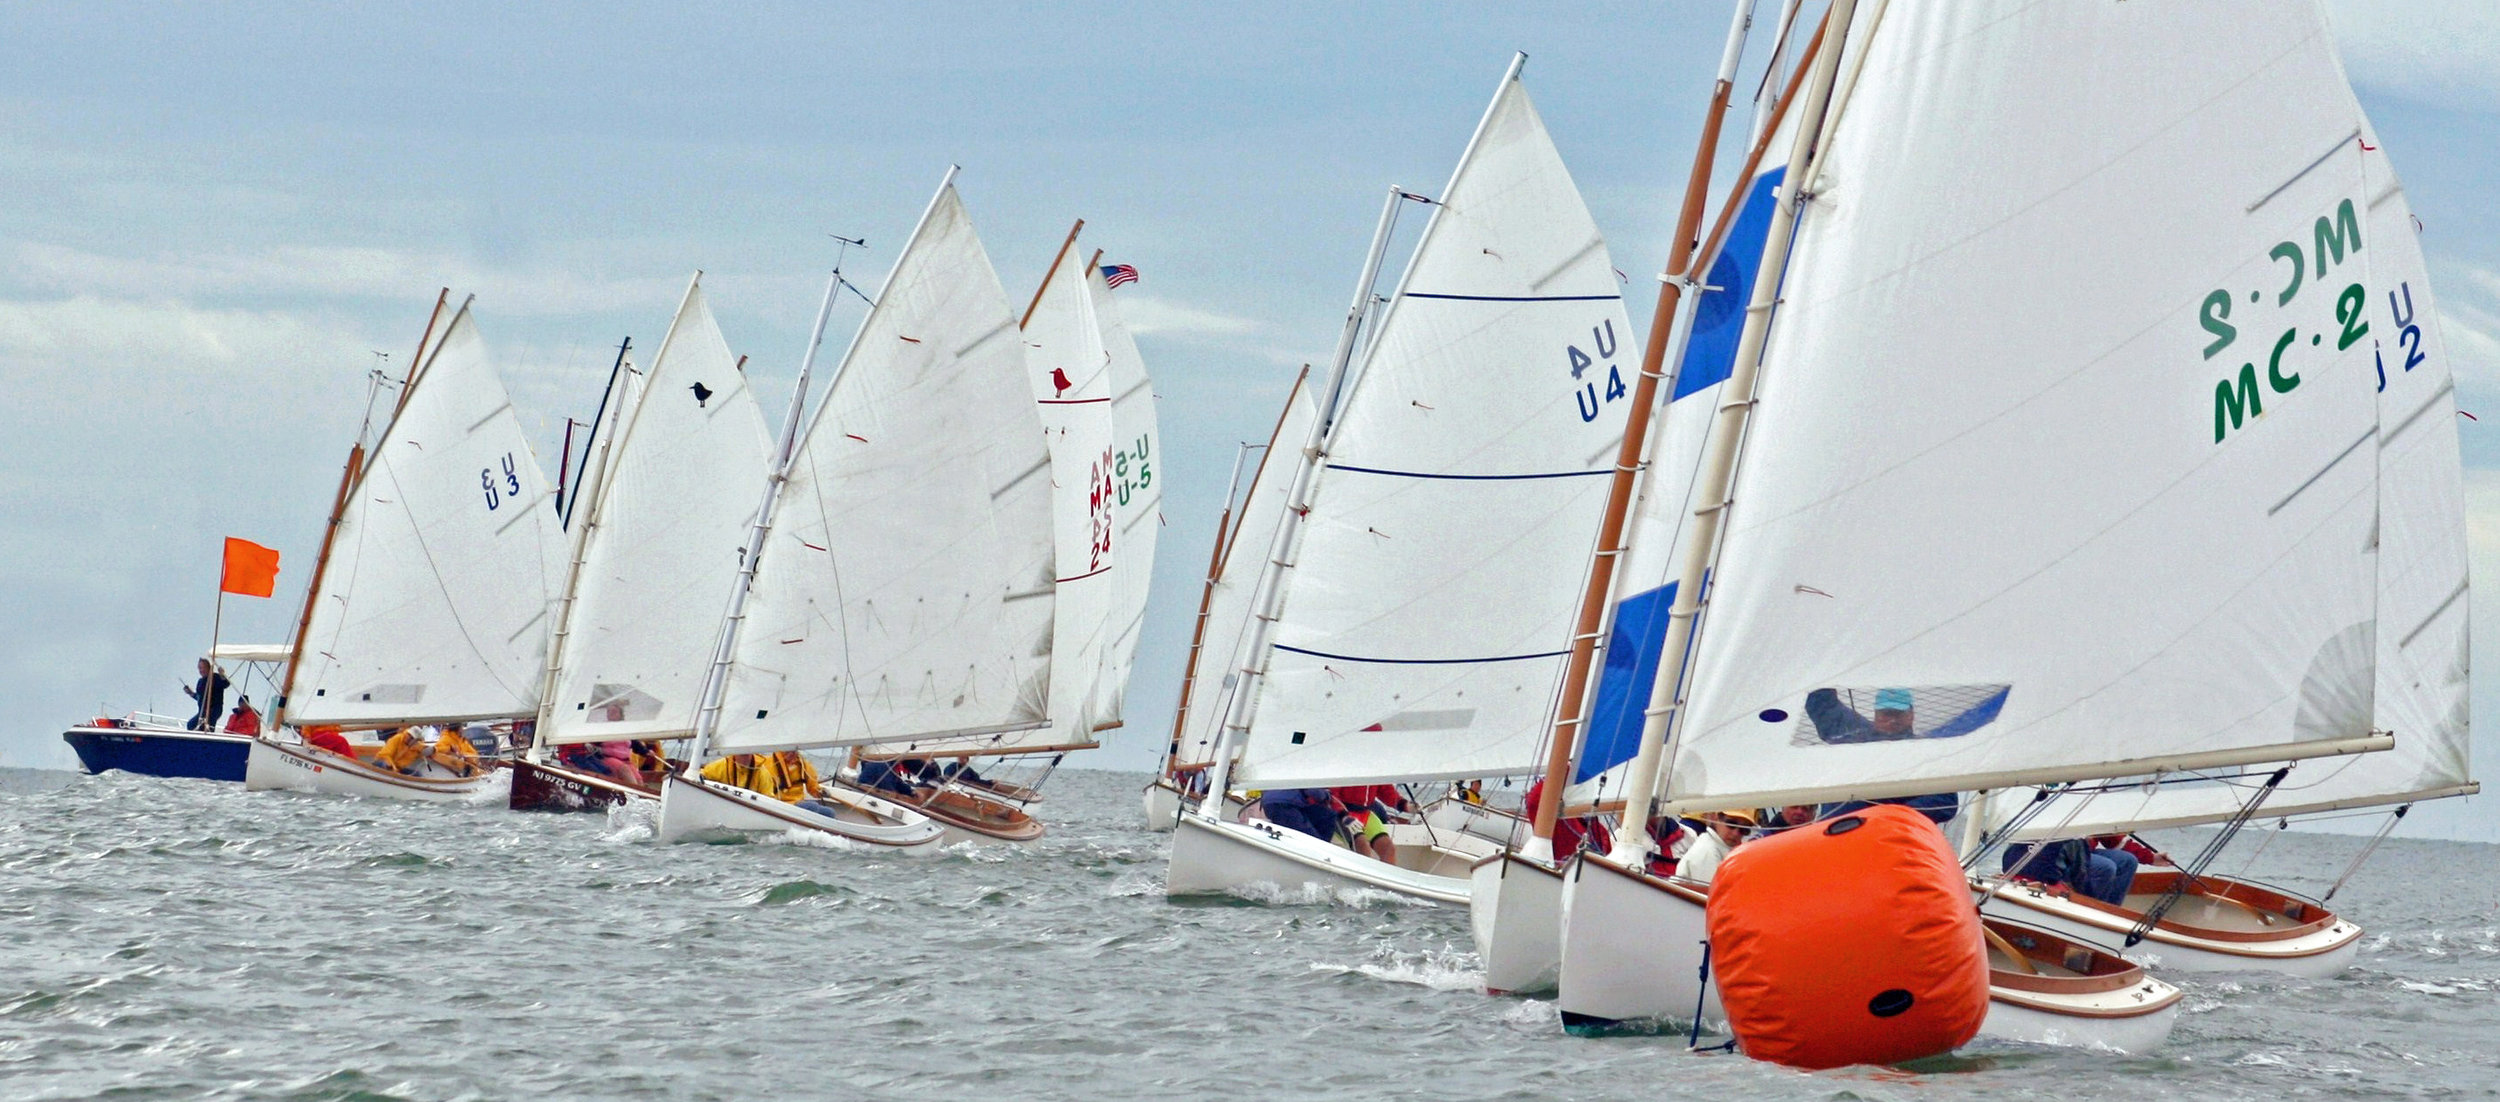 Sandpipers racing 2.jpg